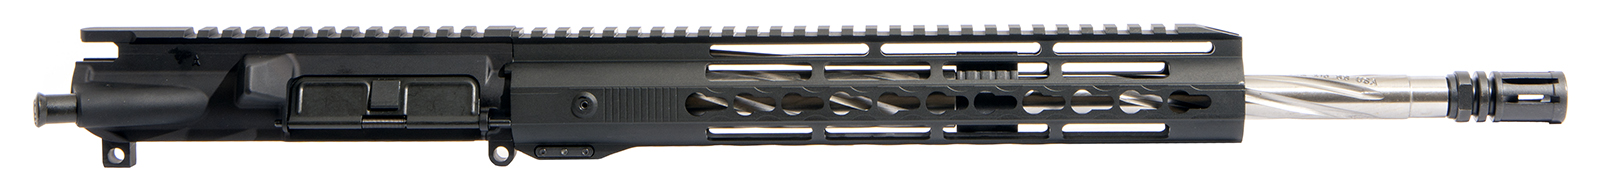 ar-15-upper-assembly-16-223-5-56-18-stainless-steel-spiral-cut-12-cbc-industries-keymod-ar-15-handguard-rail